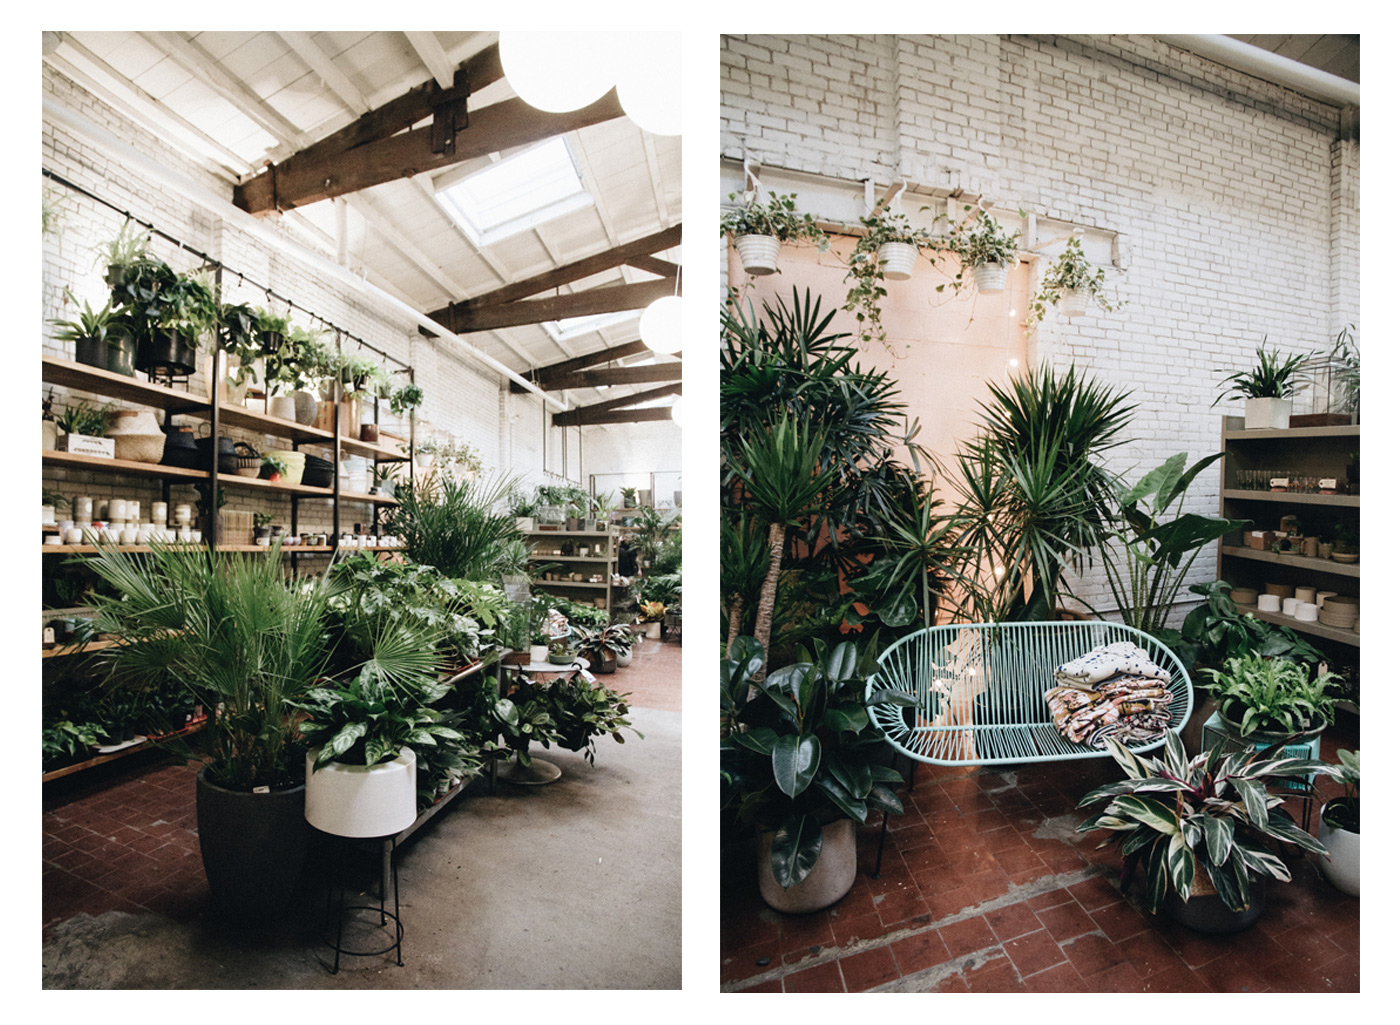 sprout home a small boutique in brooklyn new york city where you can buy alot of plants